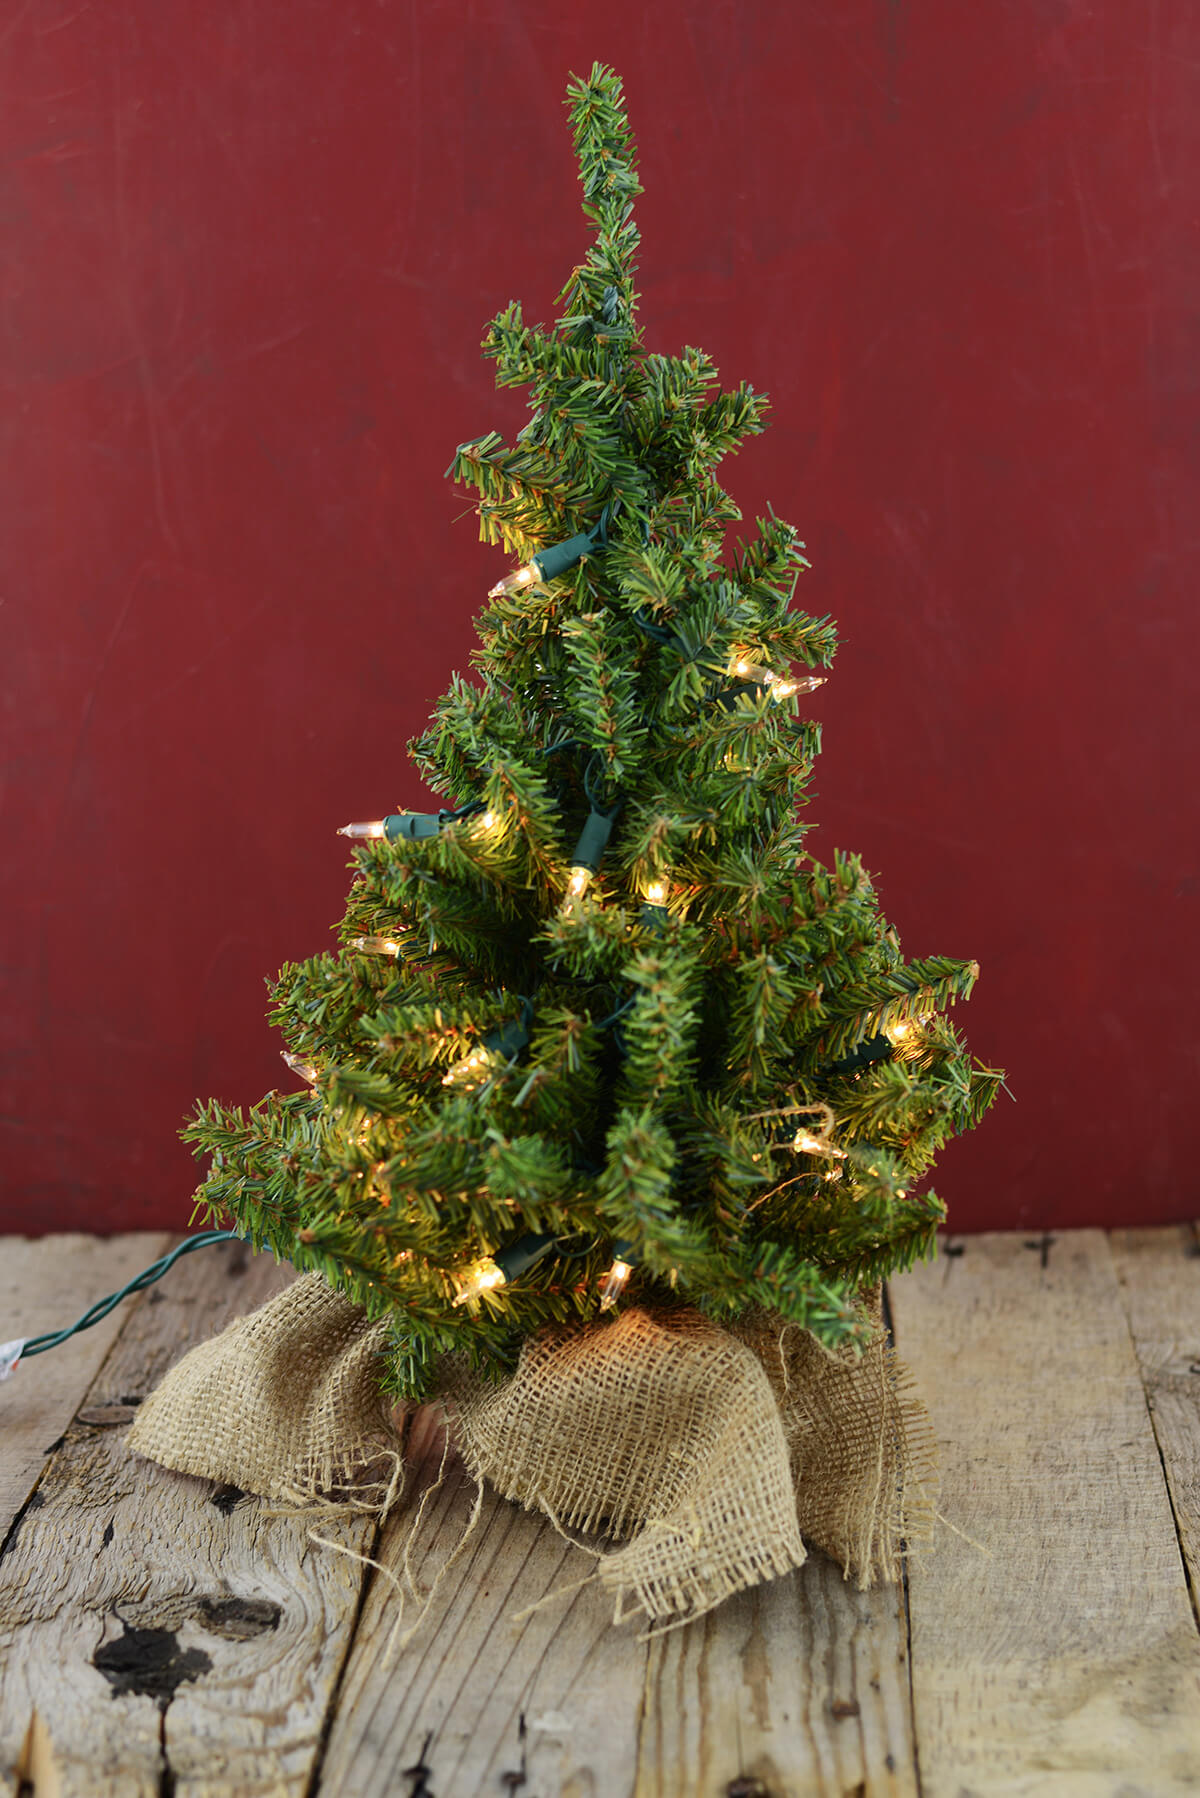 lit Artificial 18 Inch Pine Tree Burlap Sack Base Tabletop ...